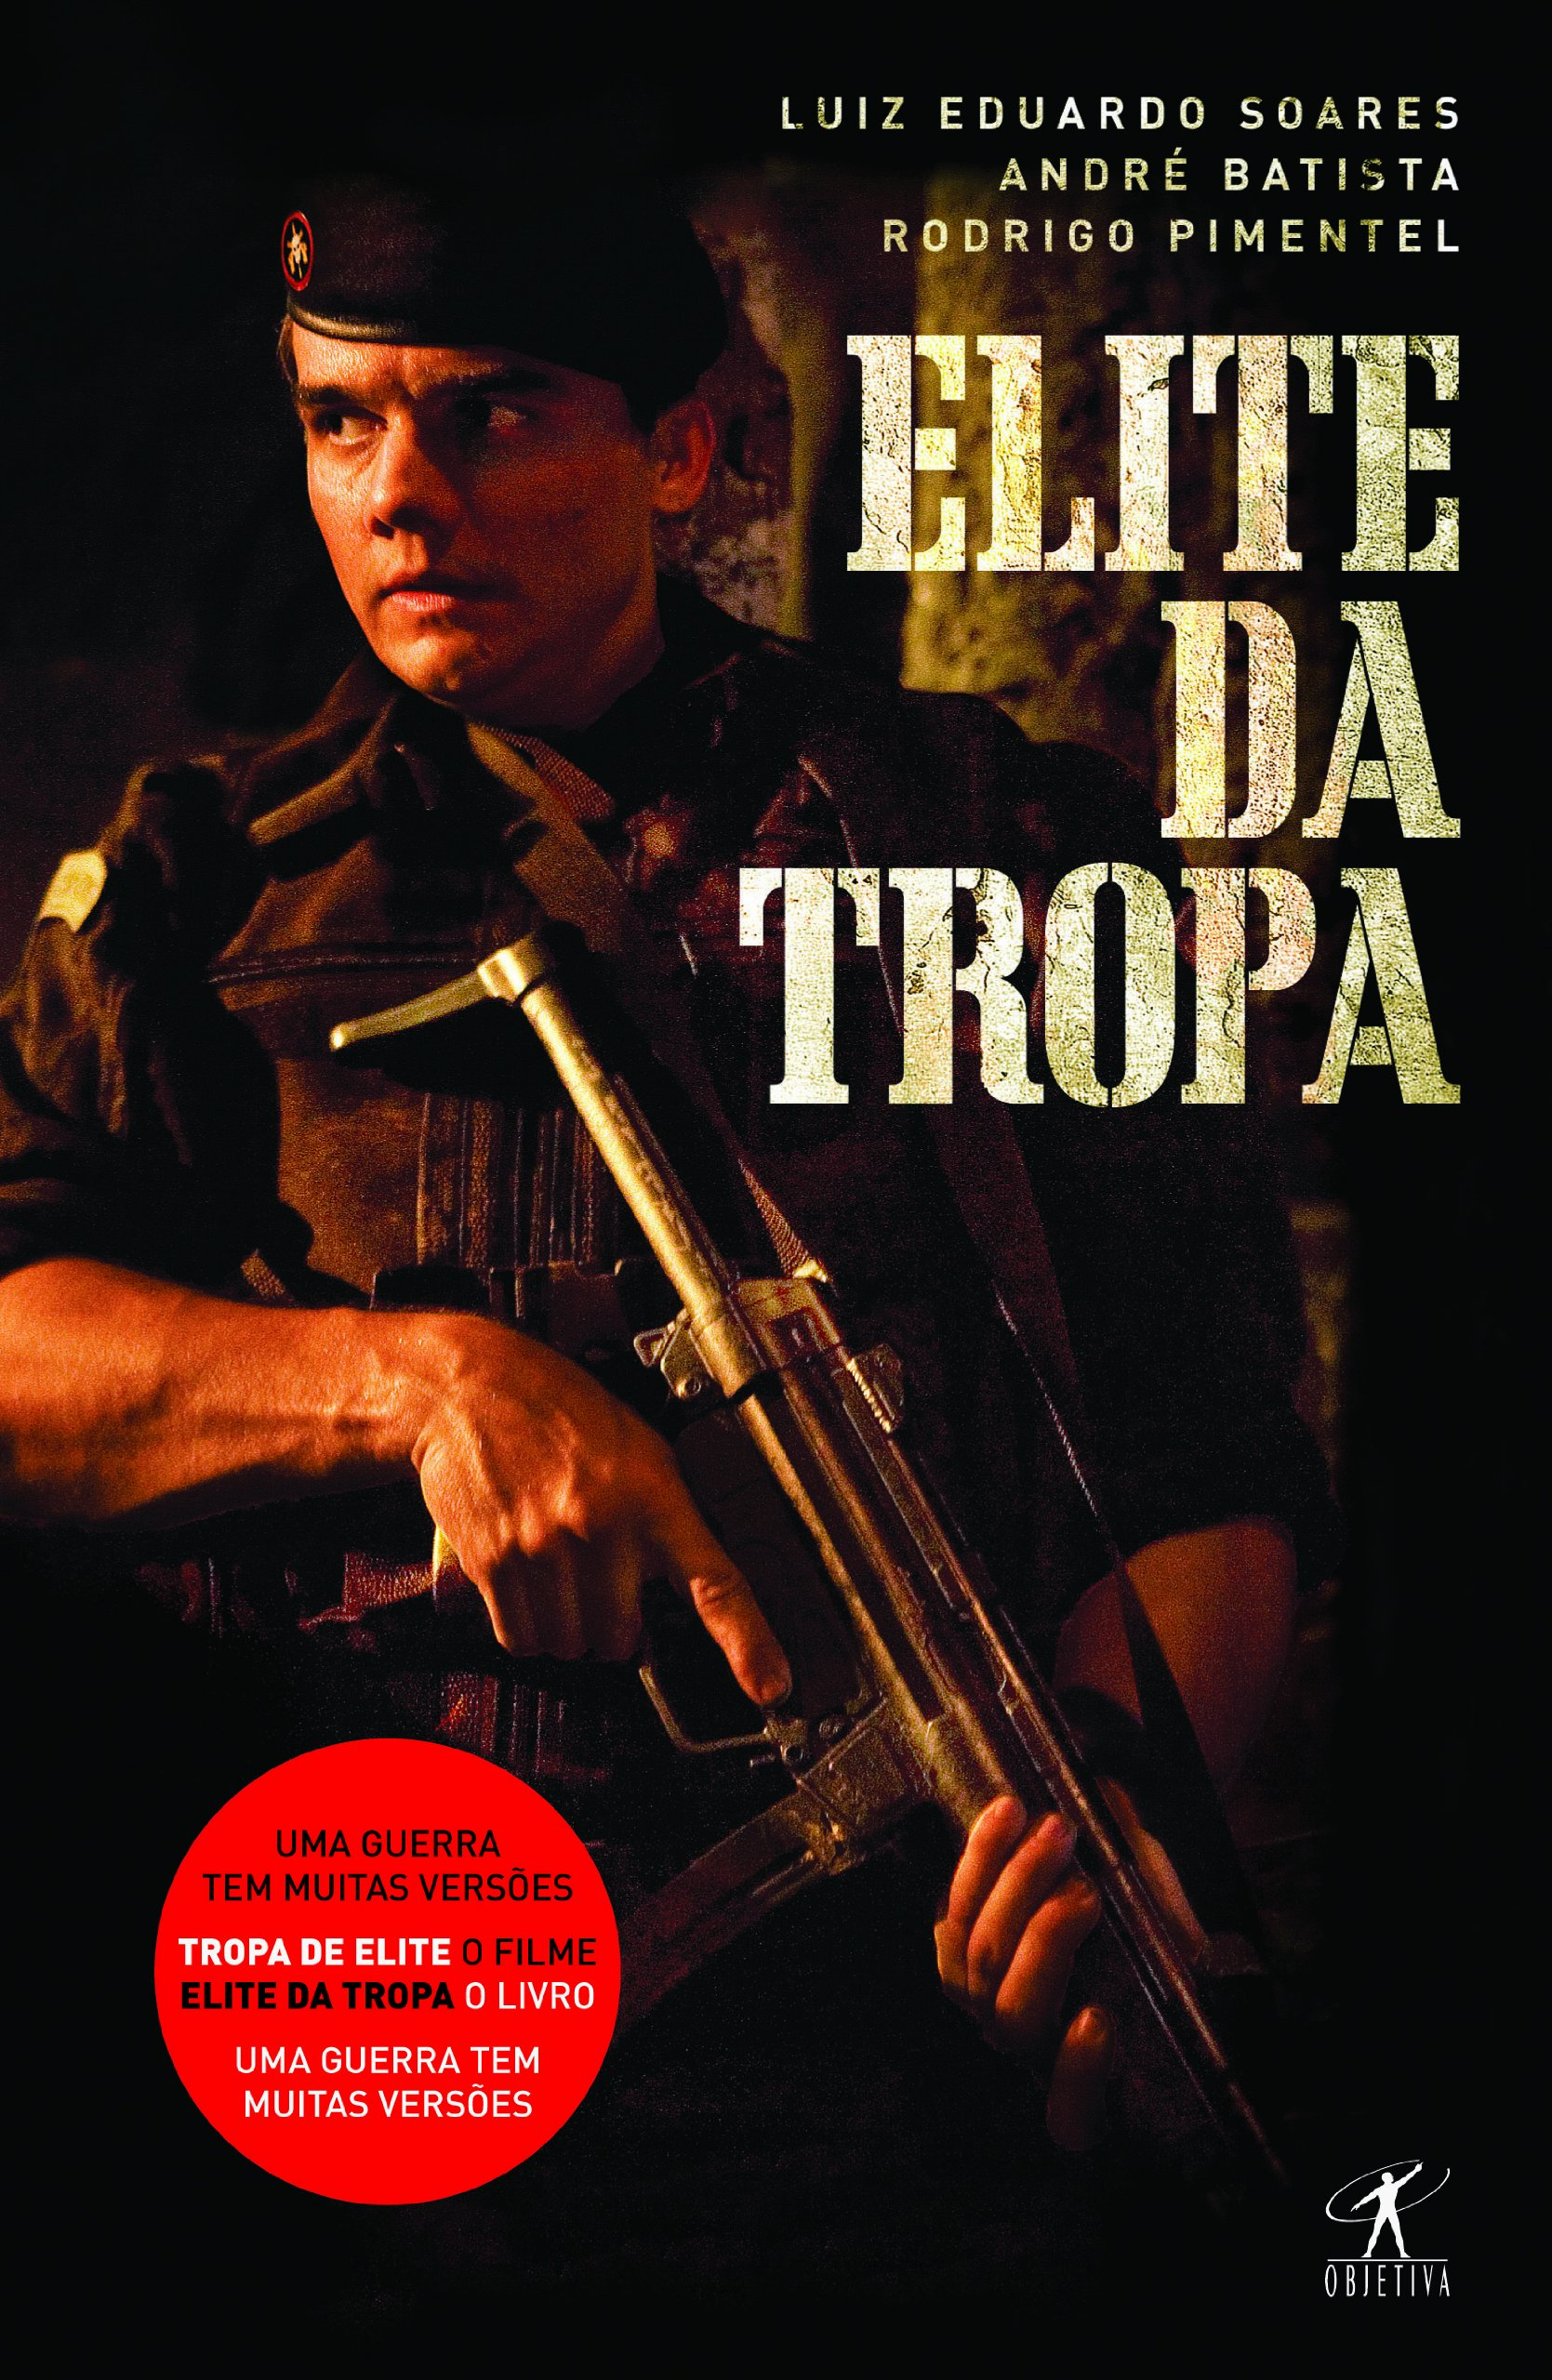 musica do filme tropa de elite gratis